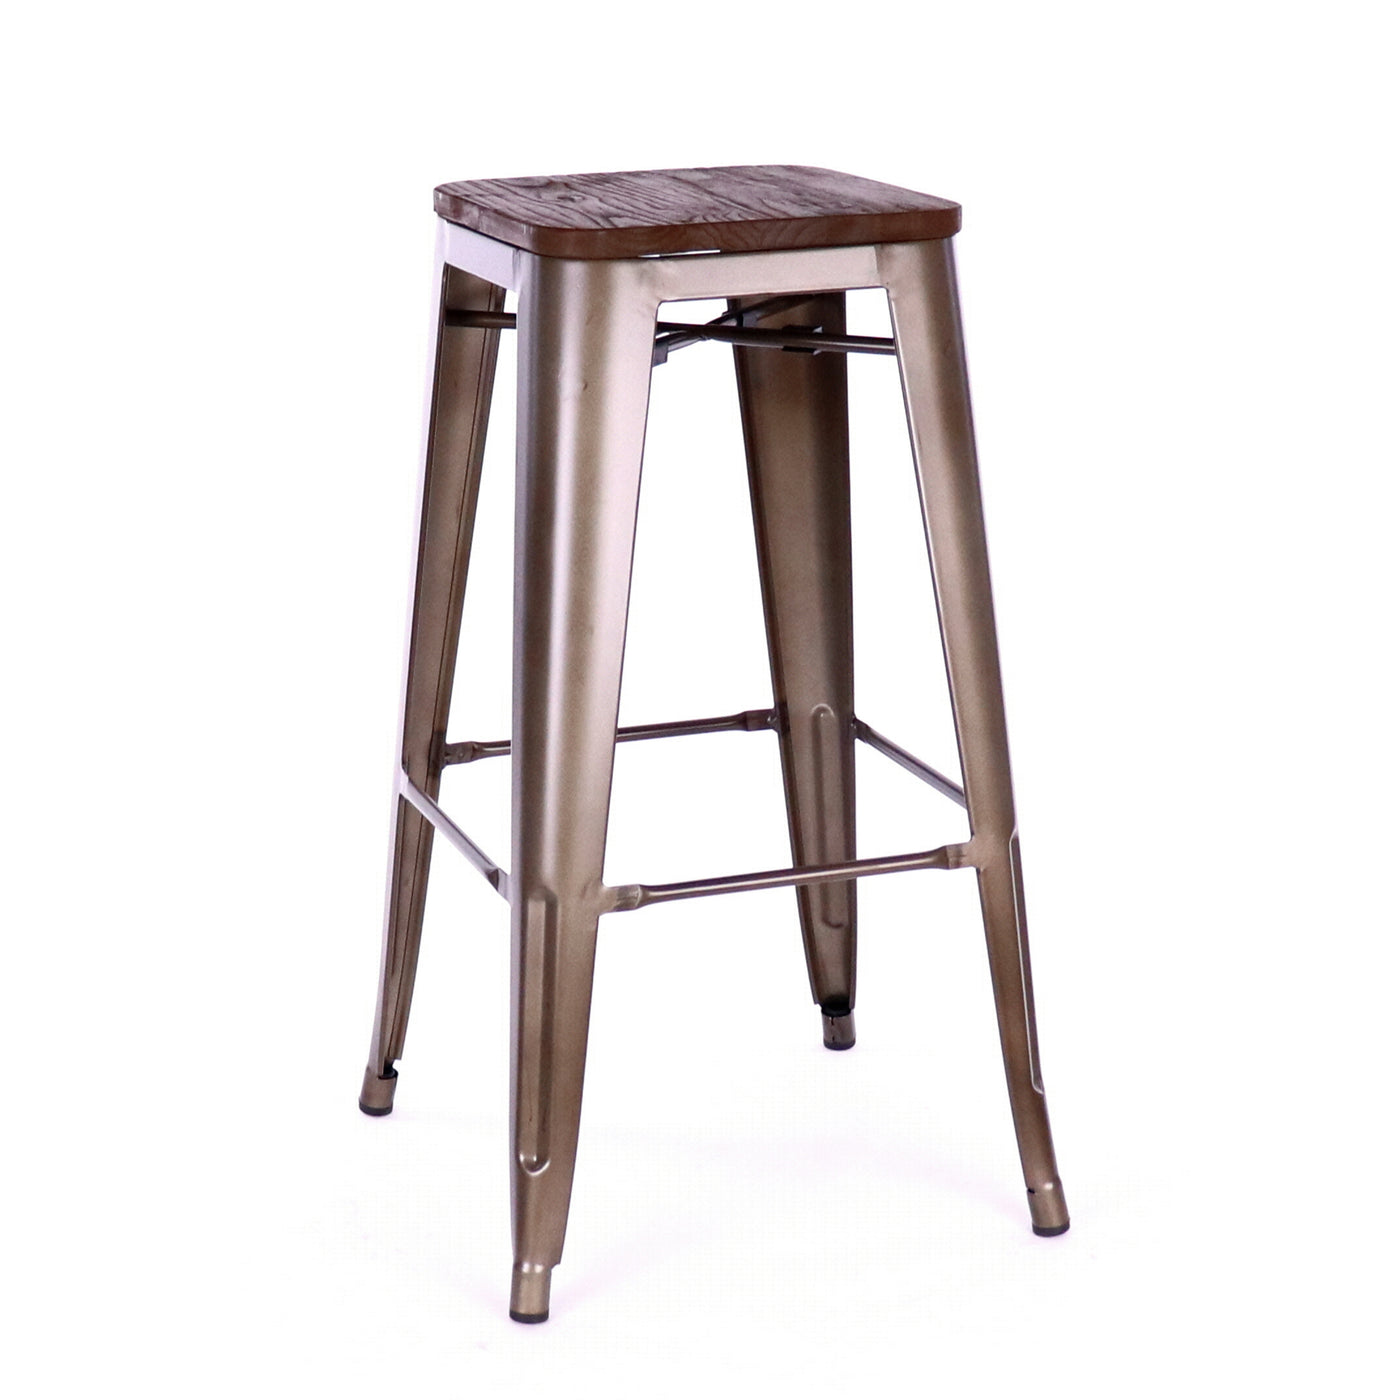 Design Lab MN LS-9100-RMTW Dreux Rustic Dark Wood Barstool Set of 4